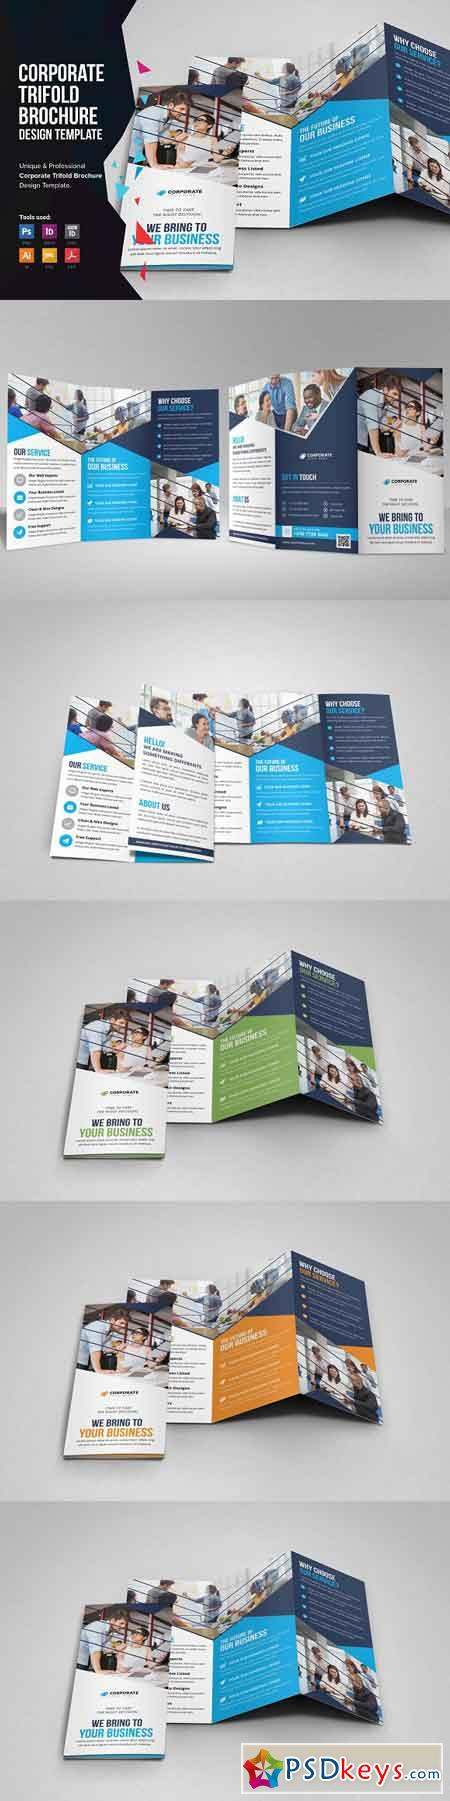 Corporate Trifold Brochure v2 2883049